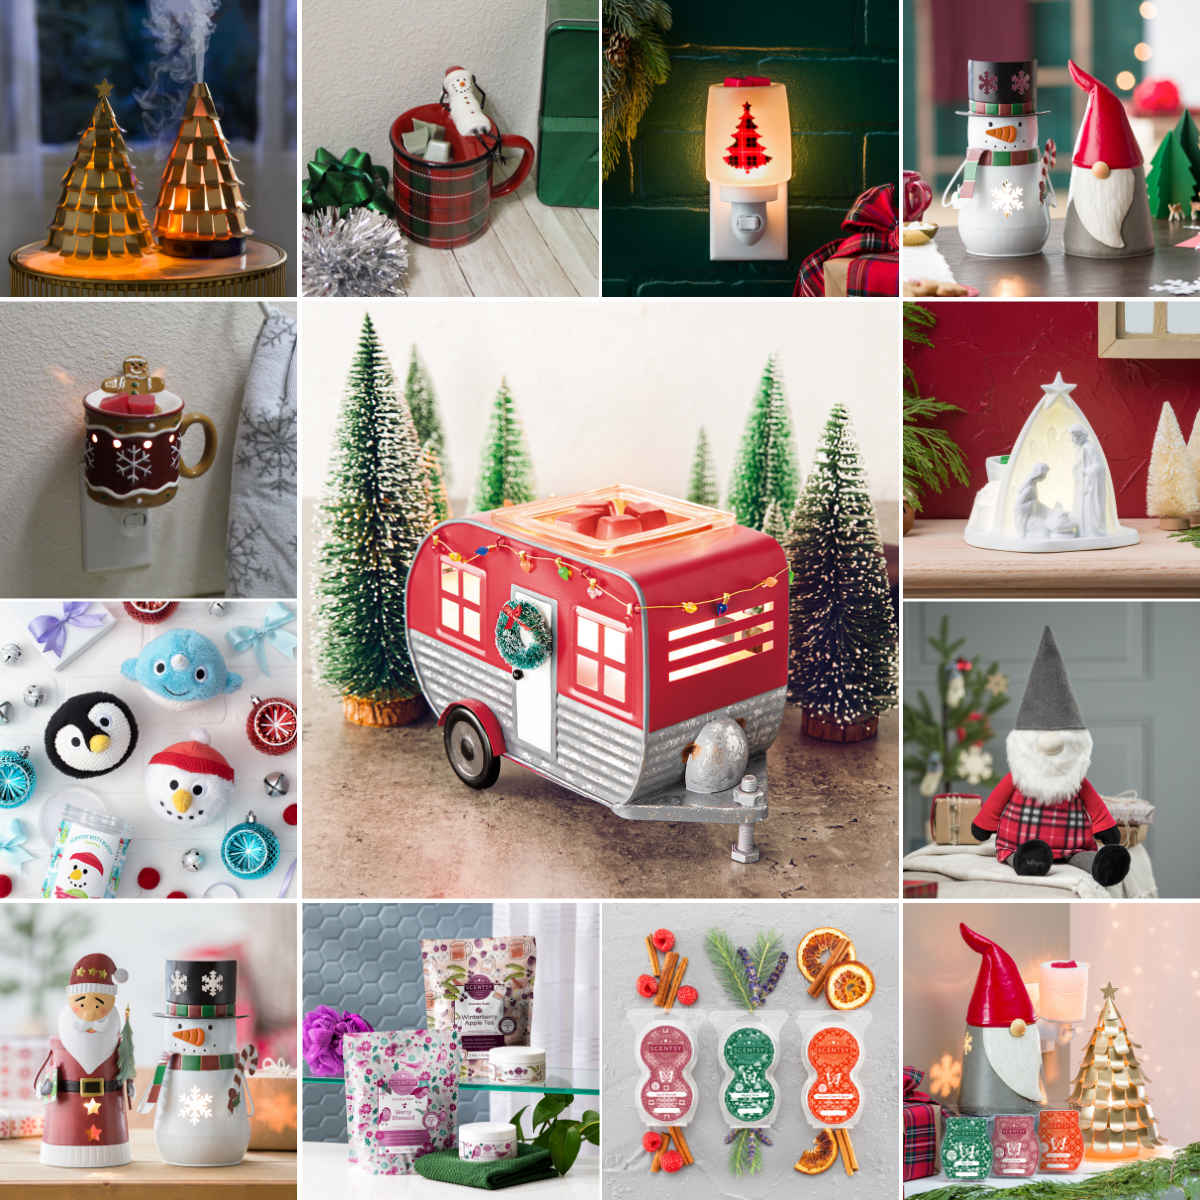 Scentsy Christmas Products 2021